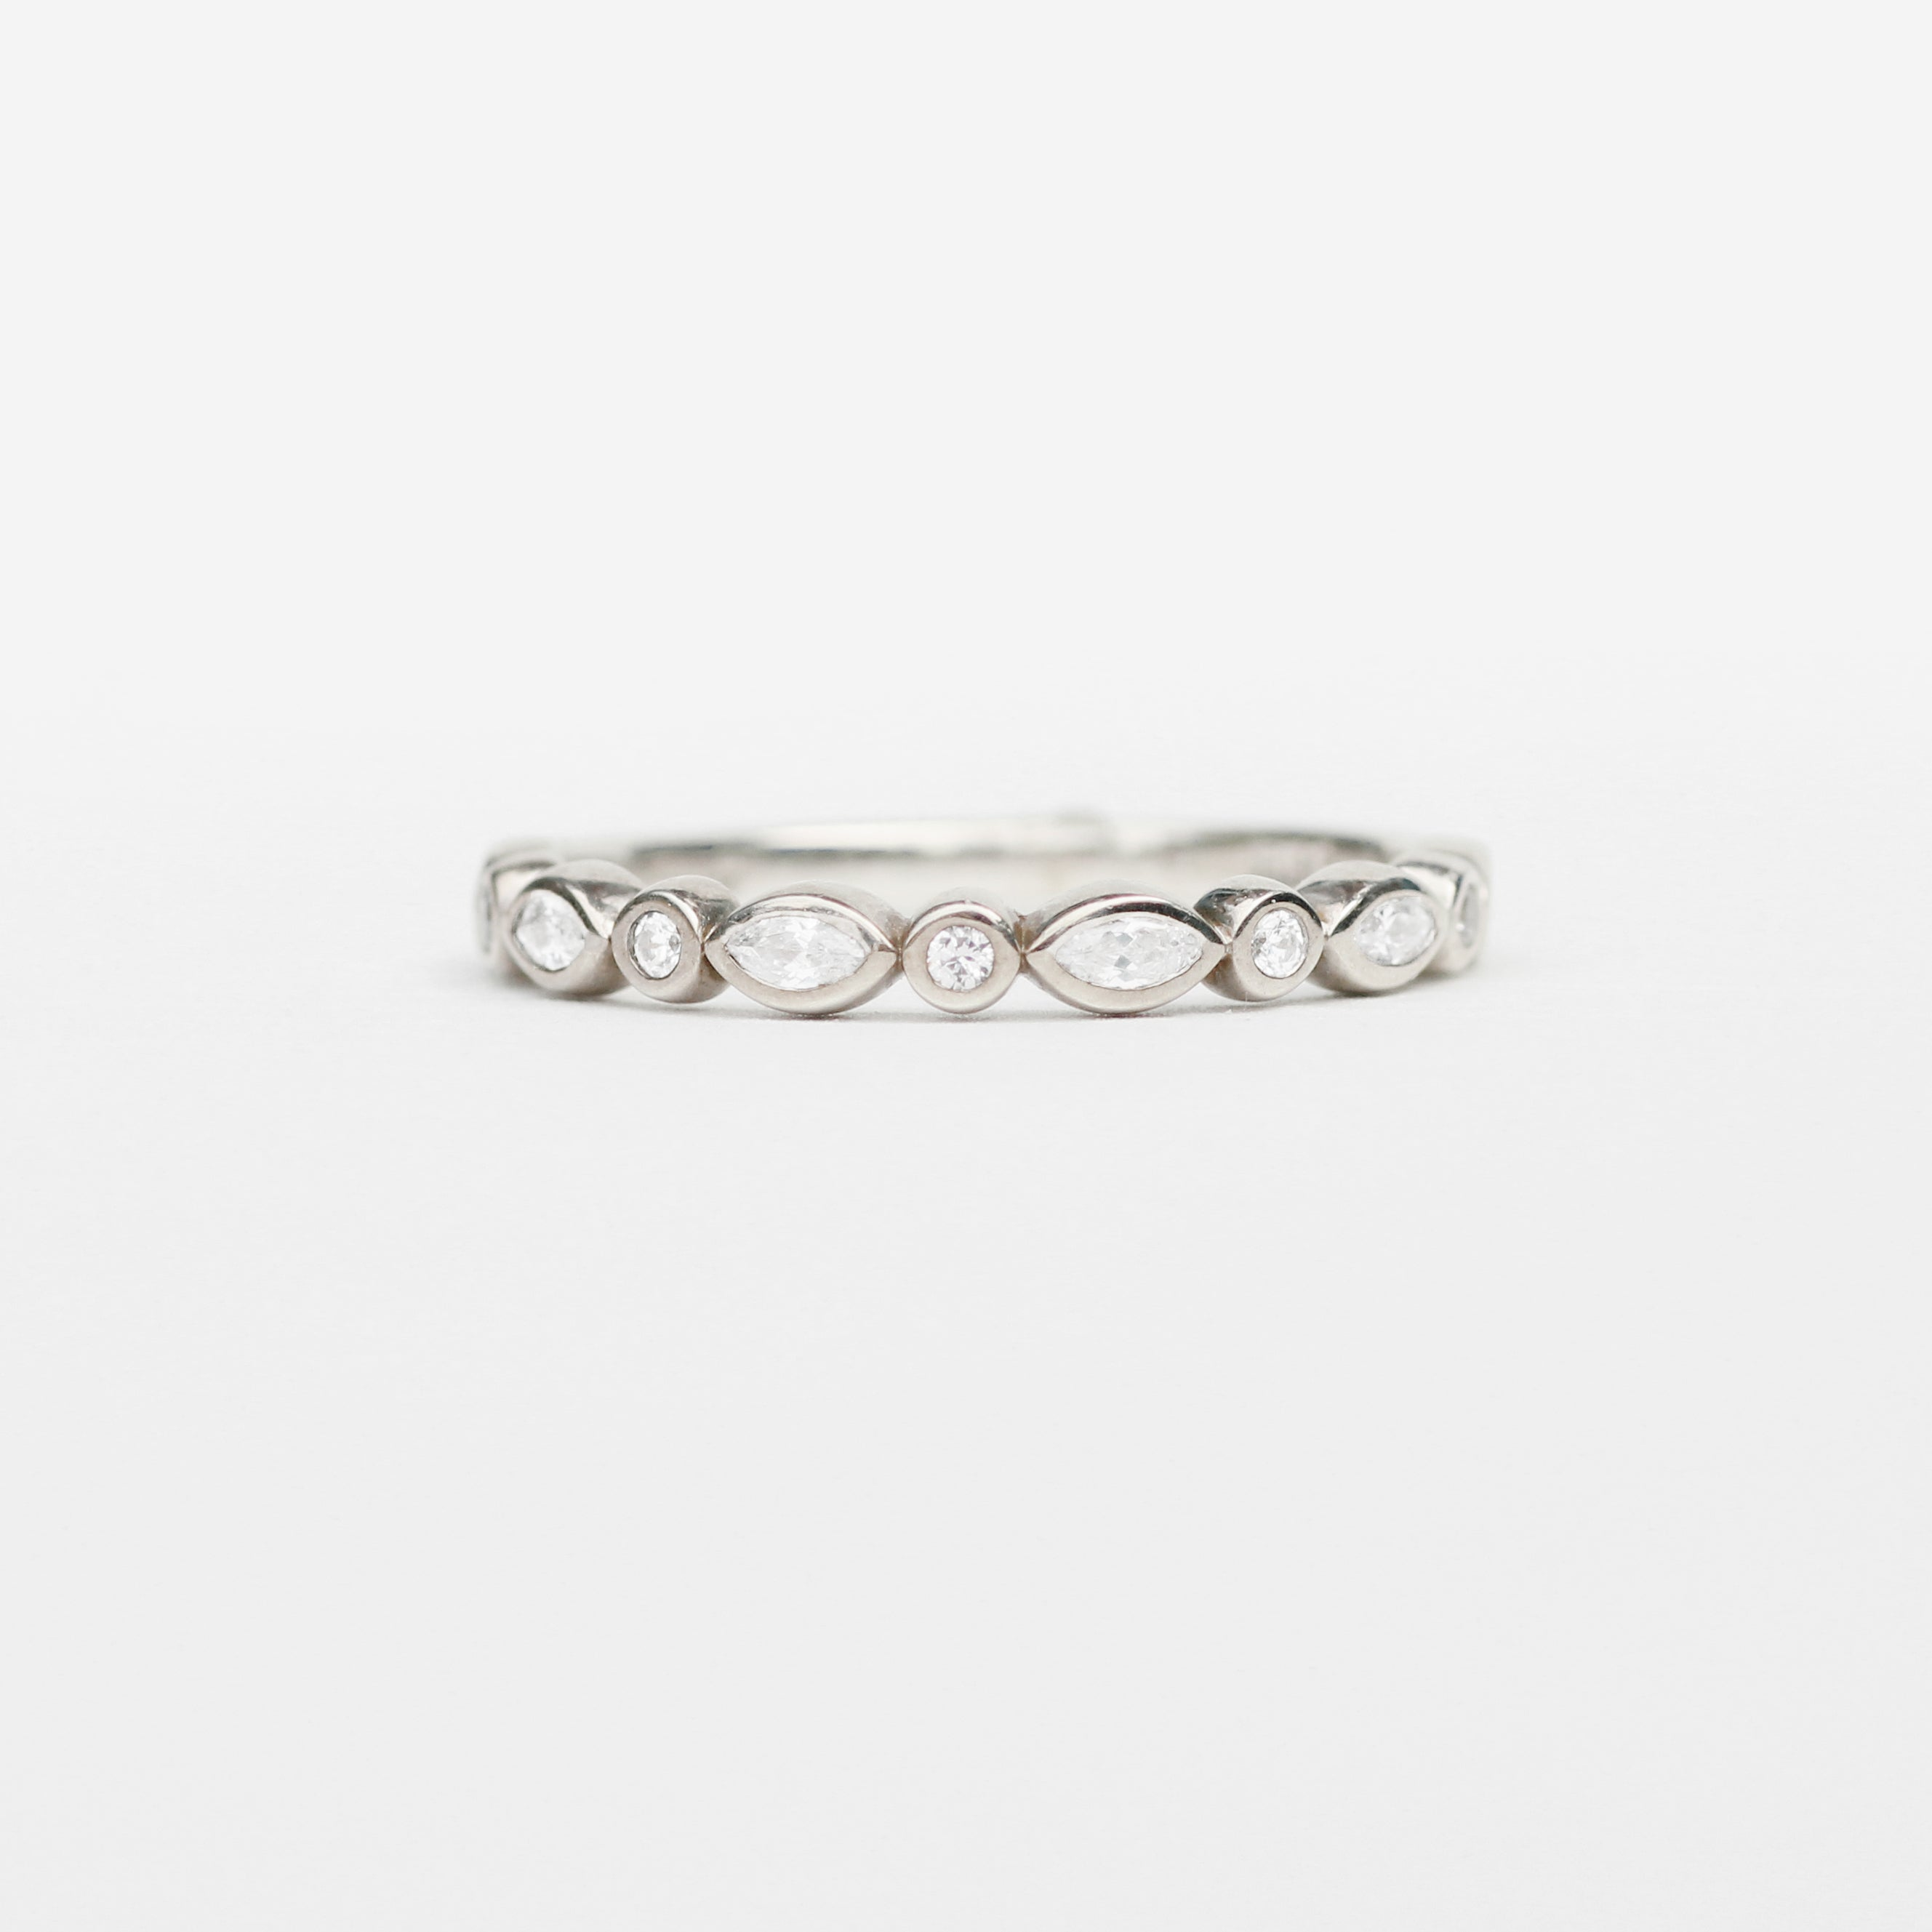 Ellyot band - diamonds in marquise and round cuts, bezel set - Your choice of metal - Midwinter Co. Alternative Bridal Rings and Modern Fine Jewelry